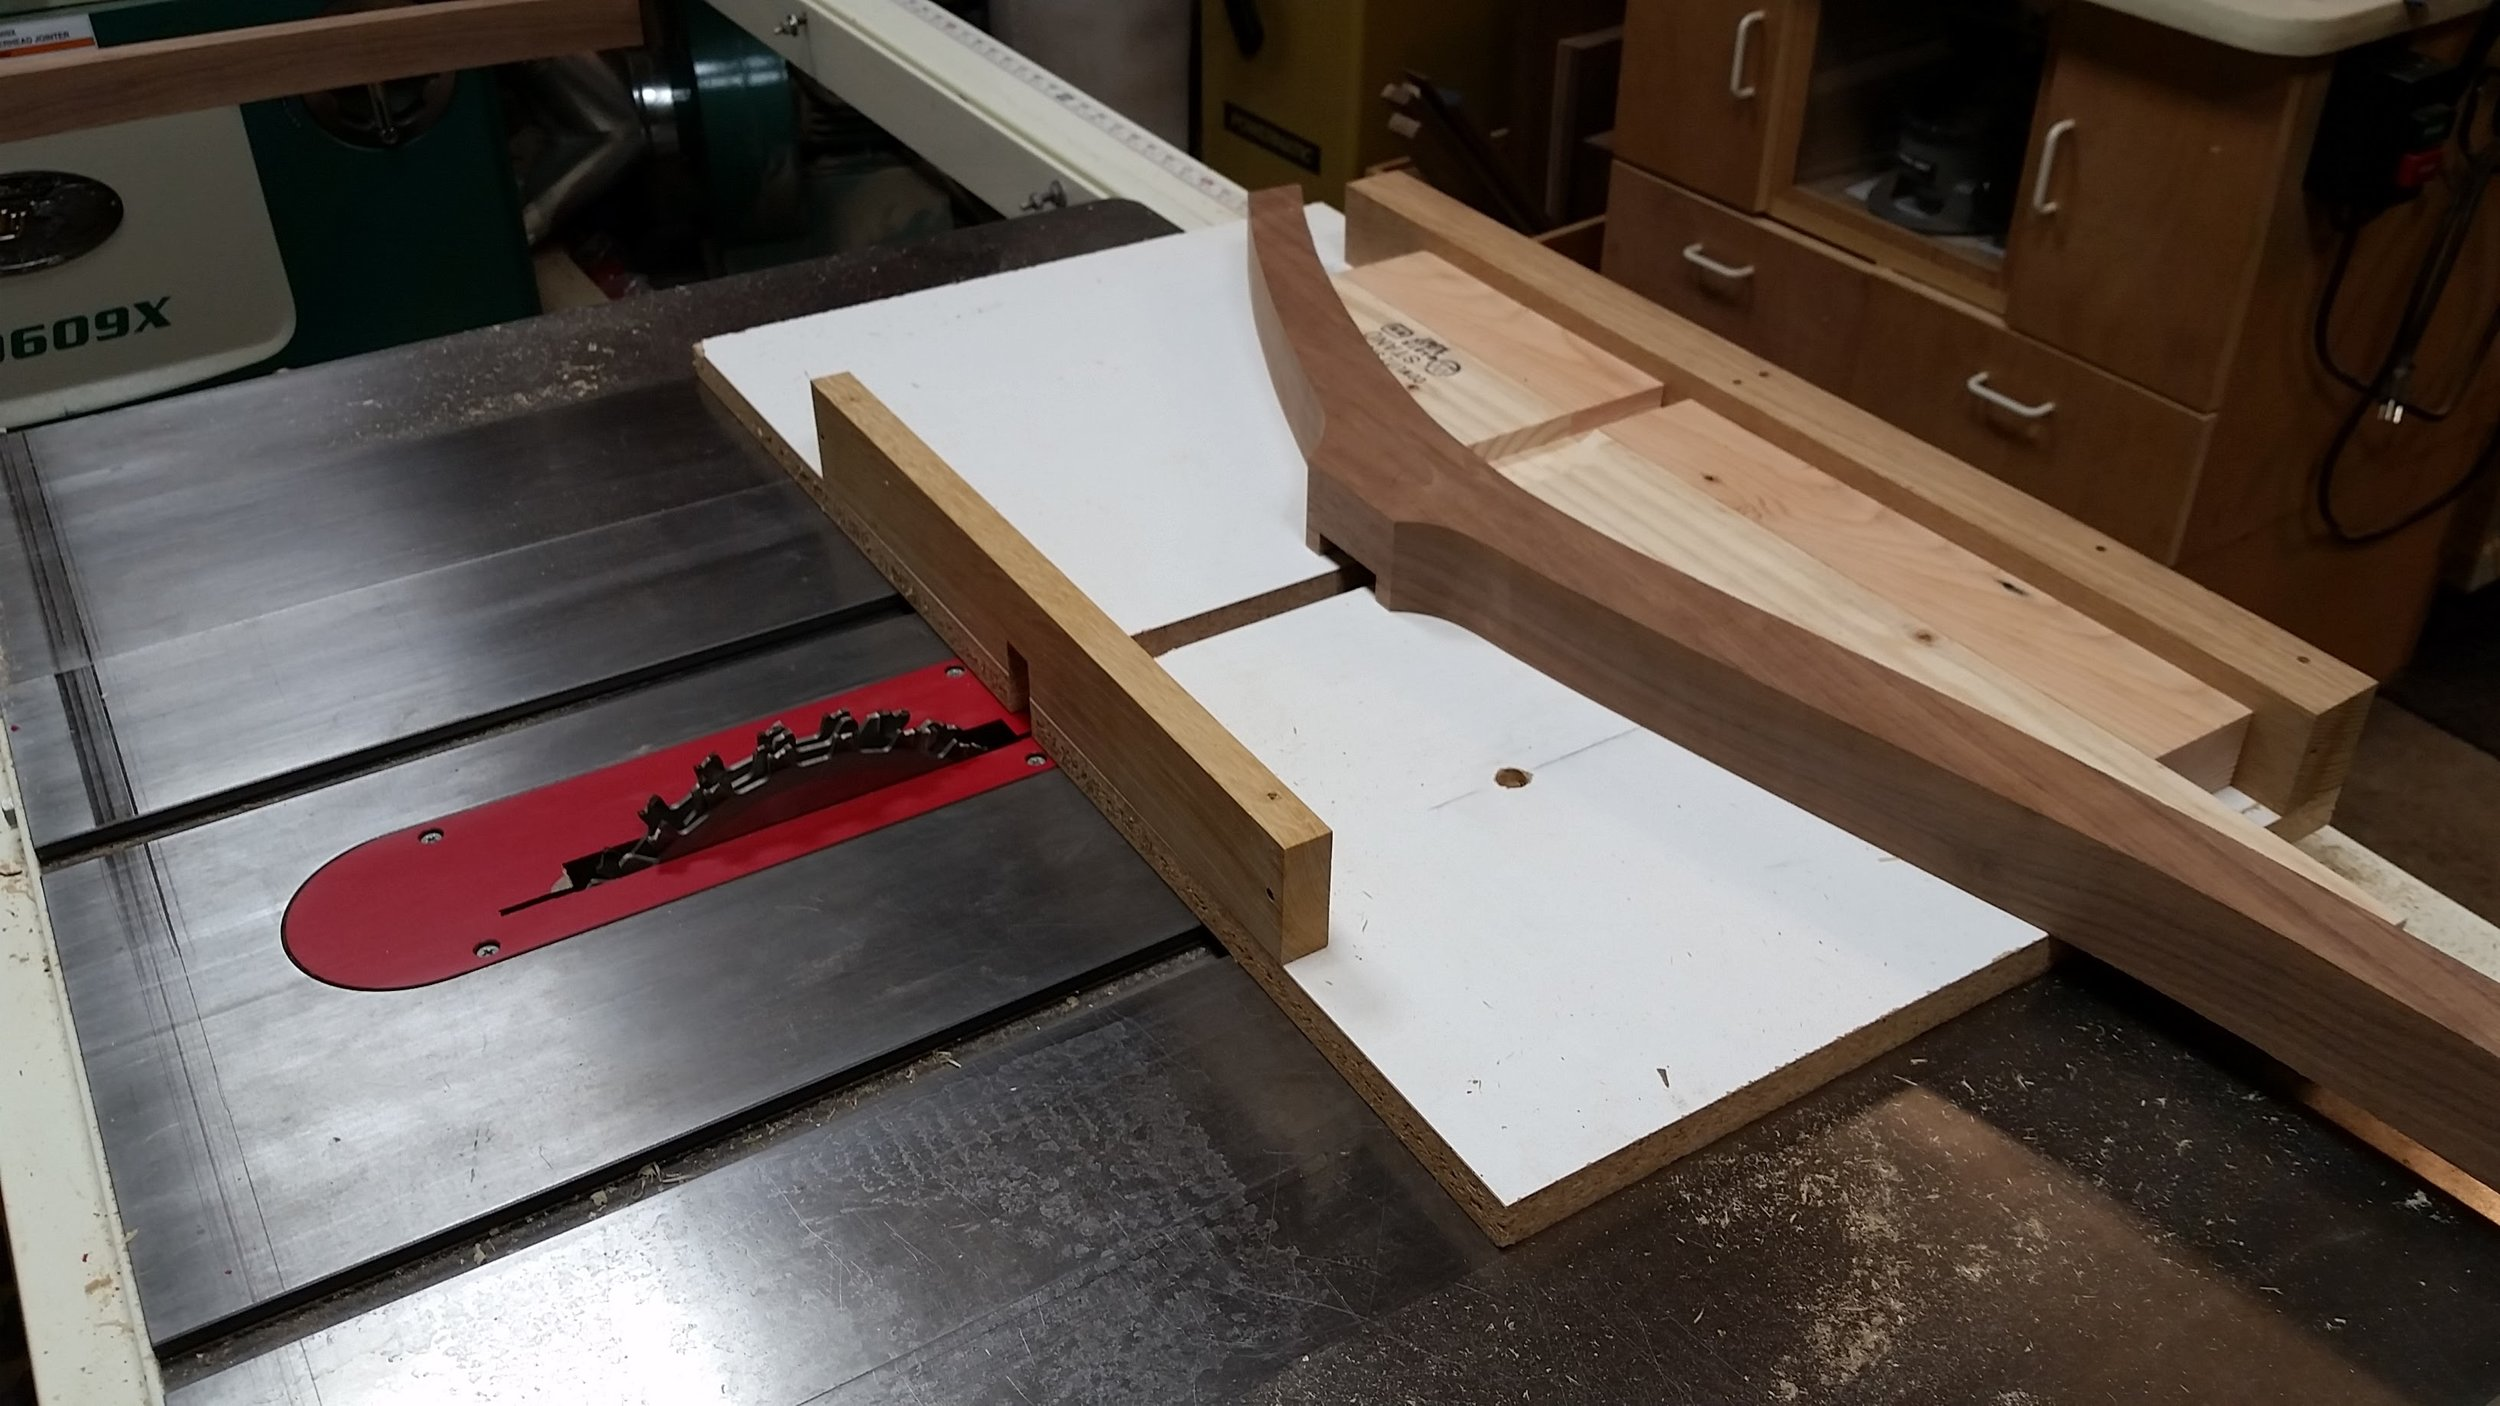 Another view of the rear leg on the dado sled.